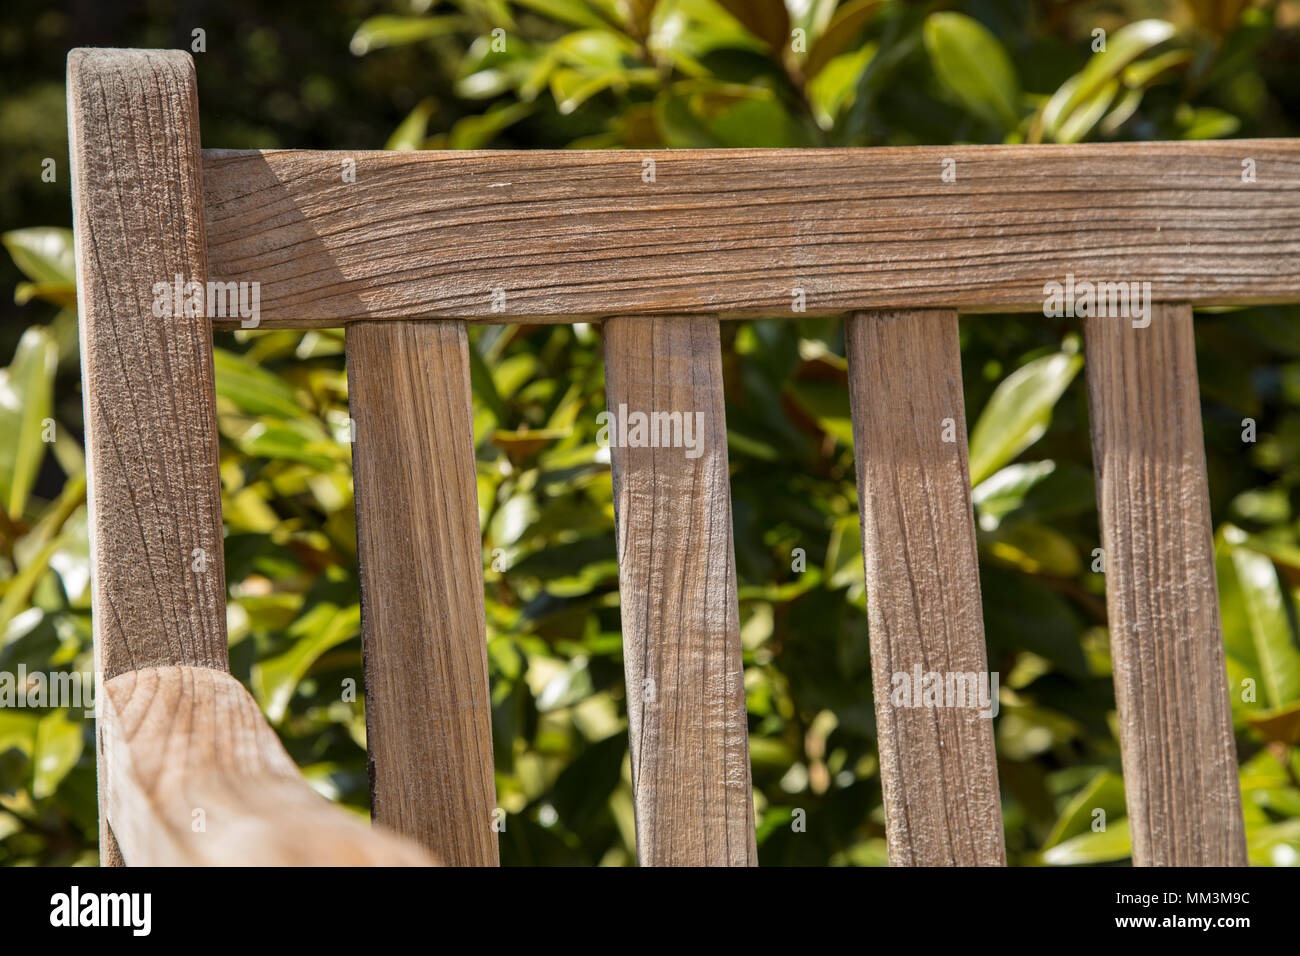 Teak Bench Stock Photos & Teak Bench Stock Images - Alamy